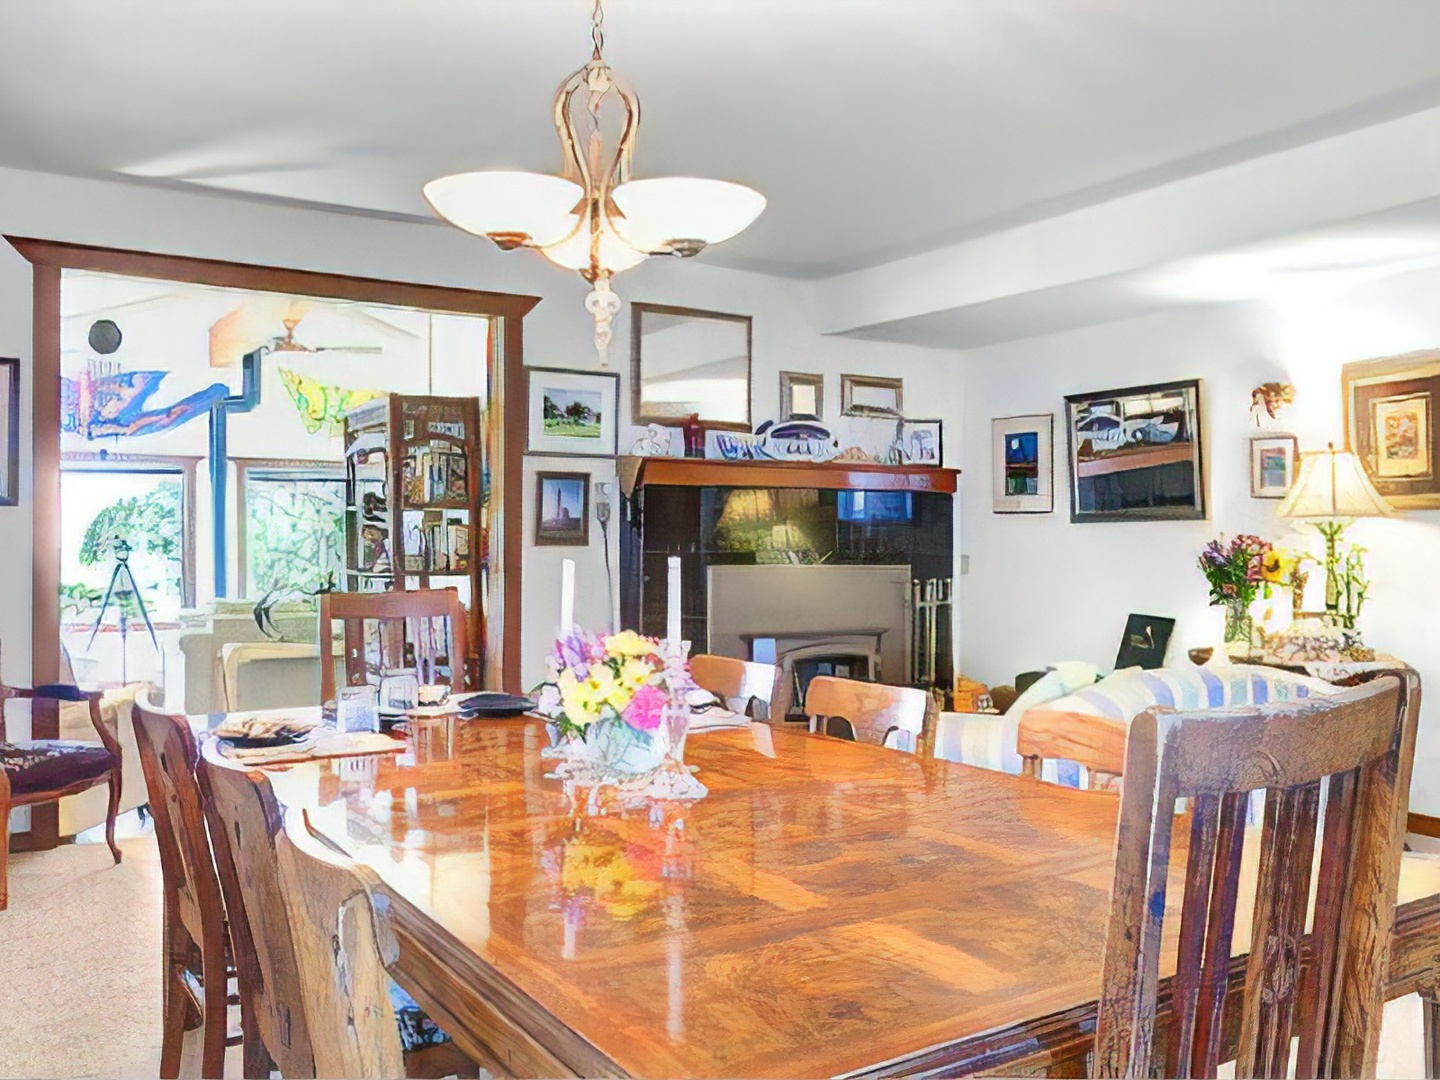 A dining room table at Boreas Bed and Breakfast Inn.